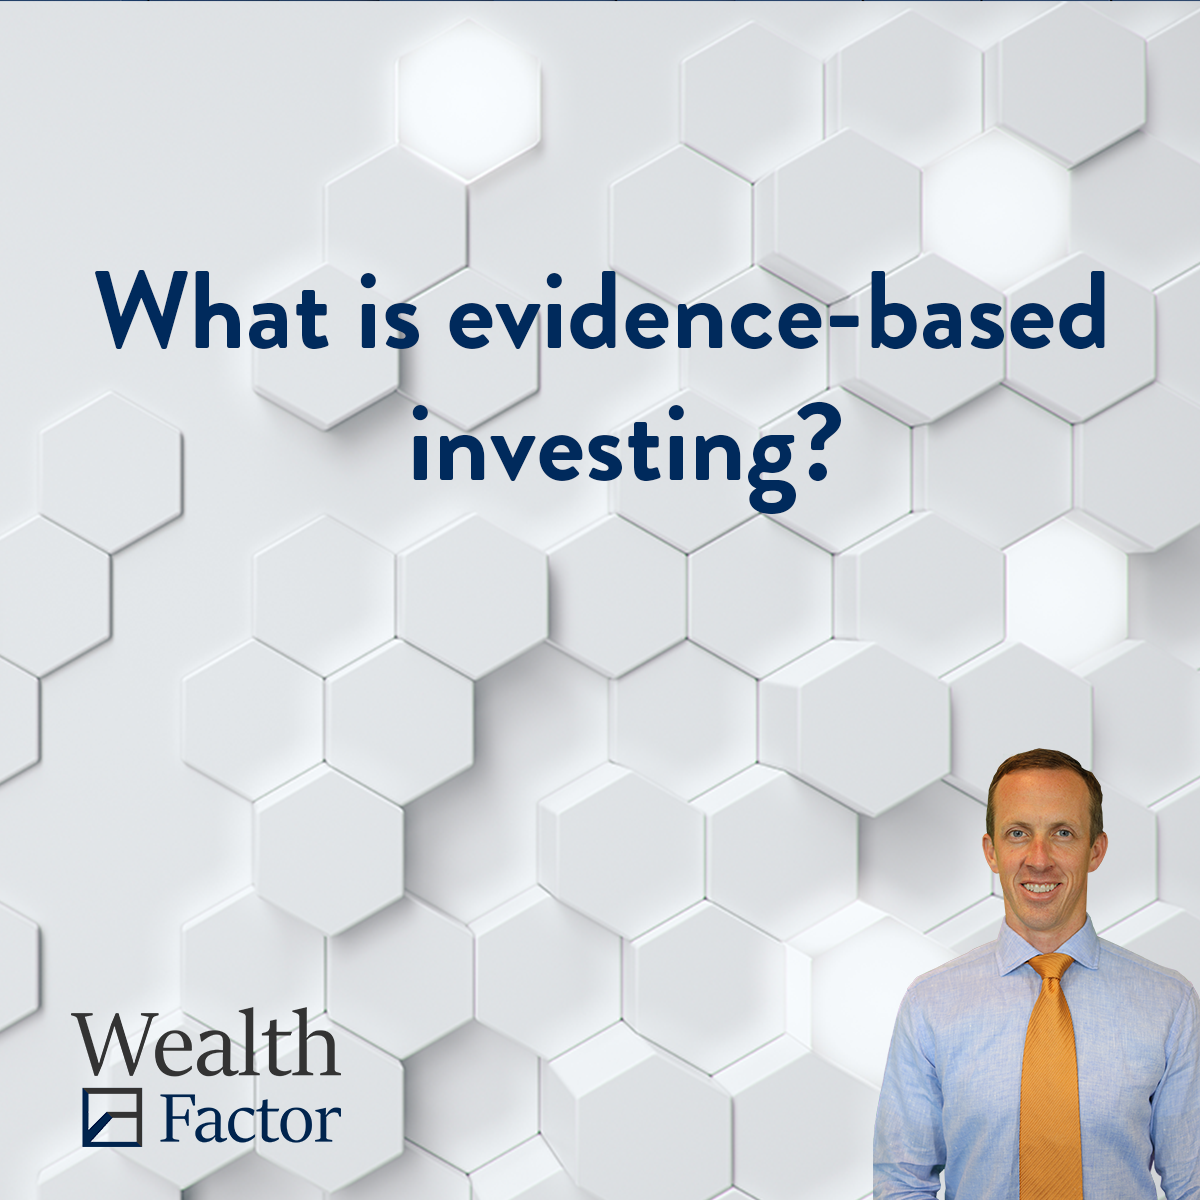 What is evidence-based investing?